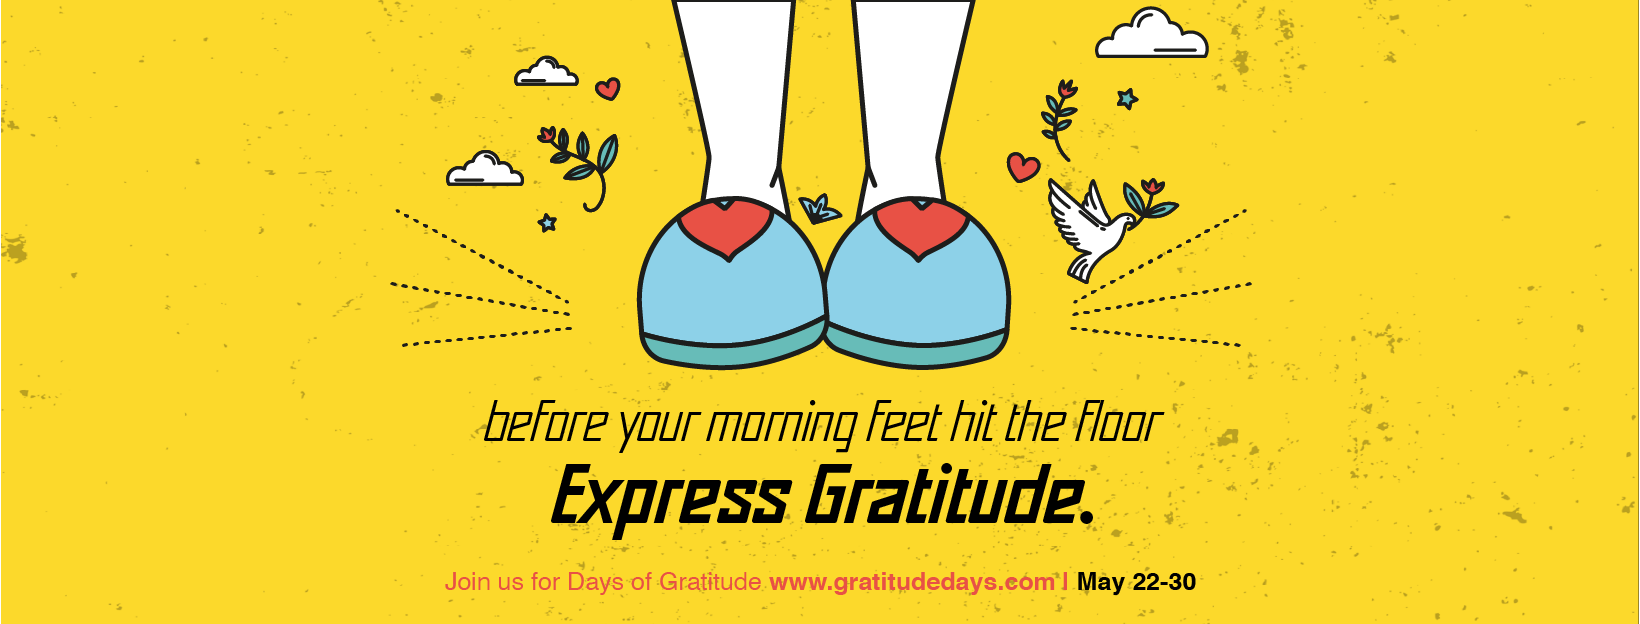 "<a href=""https://www.gratitudedays.com""